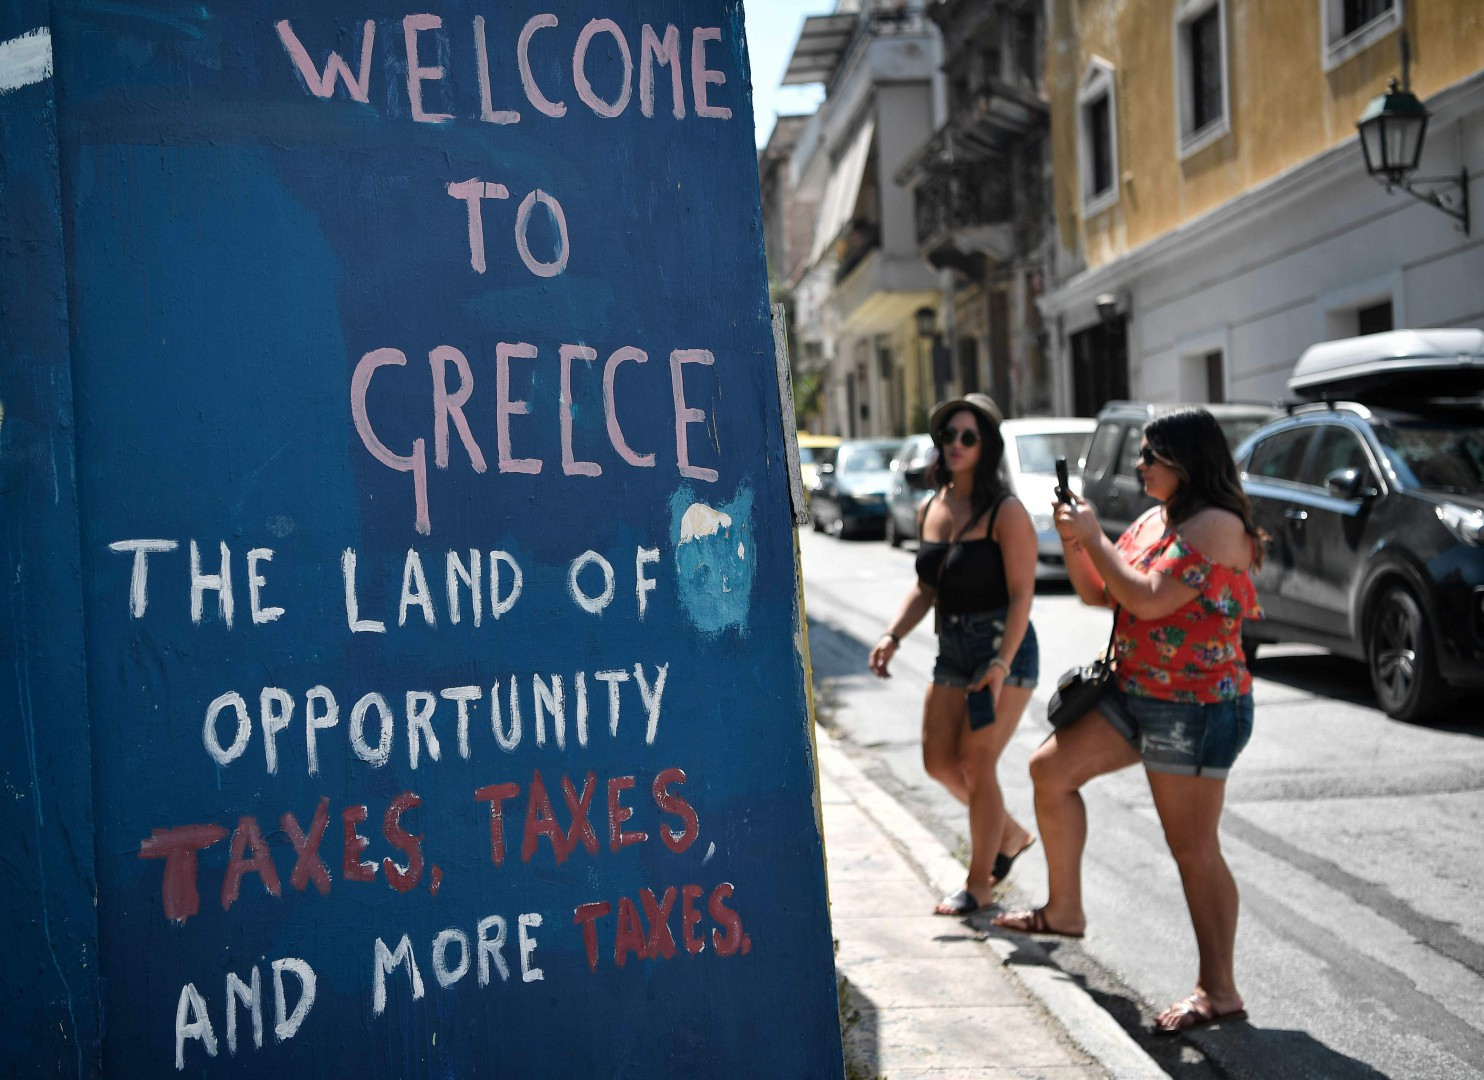 TOPSHOT - Tourists take pictures of slogans on a wall in central Athens, on August 18, 2018. - On August 20, Greece's third and final bailout officially ends after years of hugely unpopular and stinging austerity measures. The economy is growing slowly, and unemployment fell to below 20 percent in May for the first time since 2011. (Photo by LOUISA GOULIAMAKI / AFP)